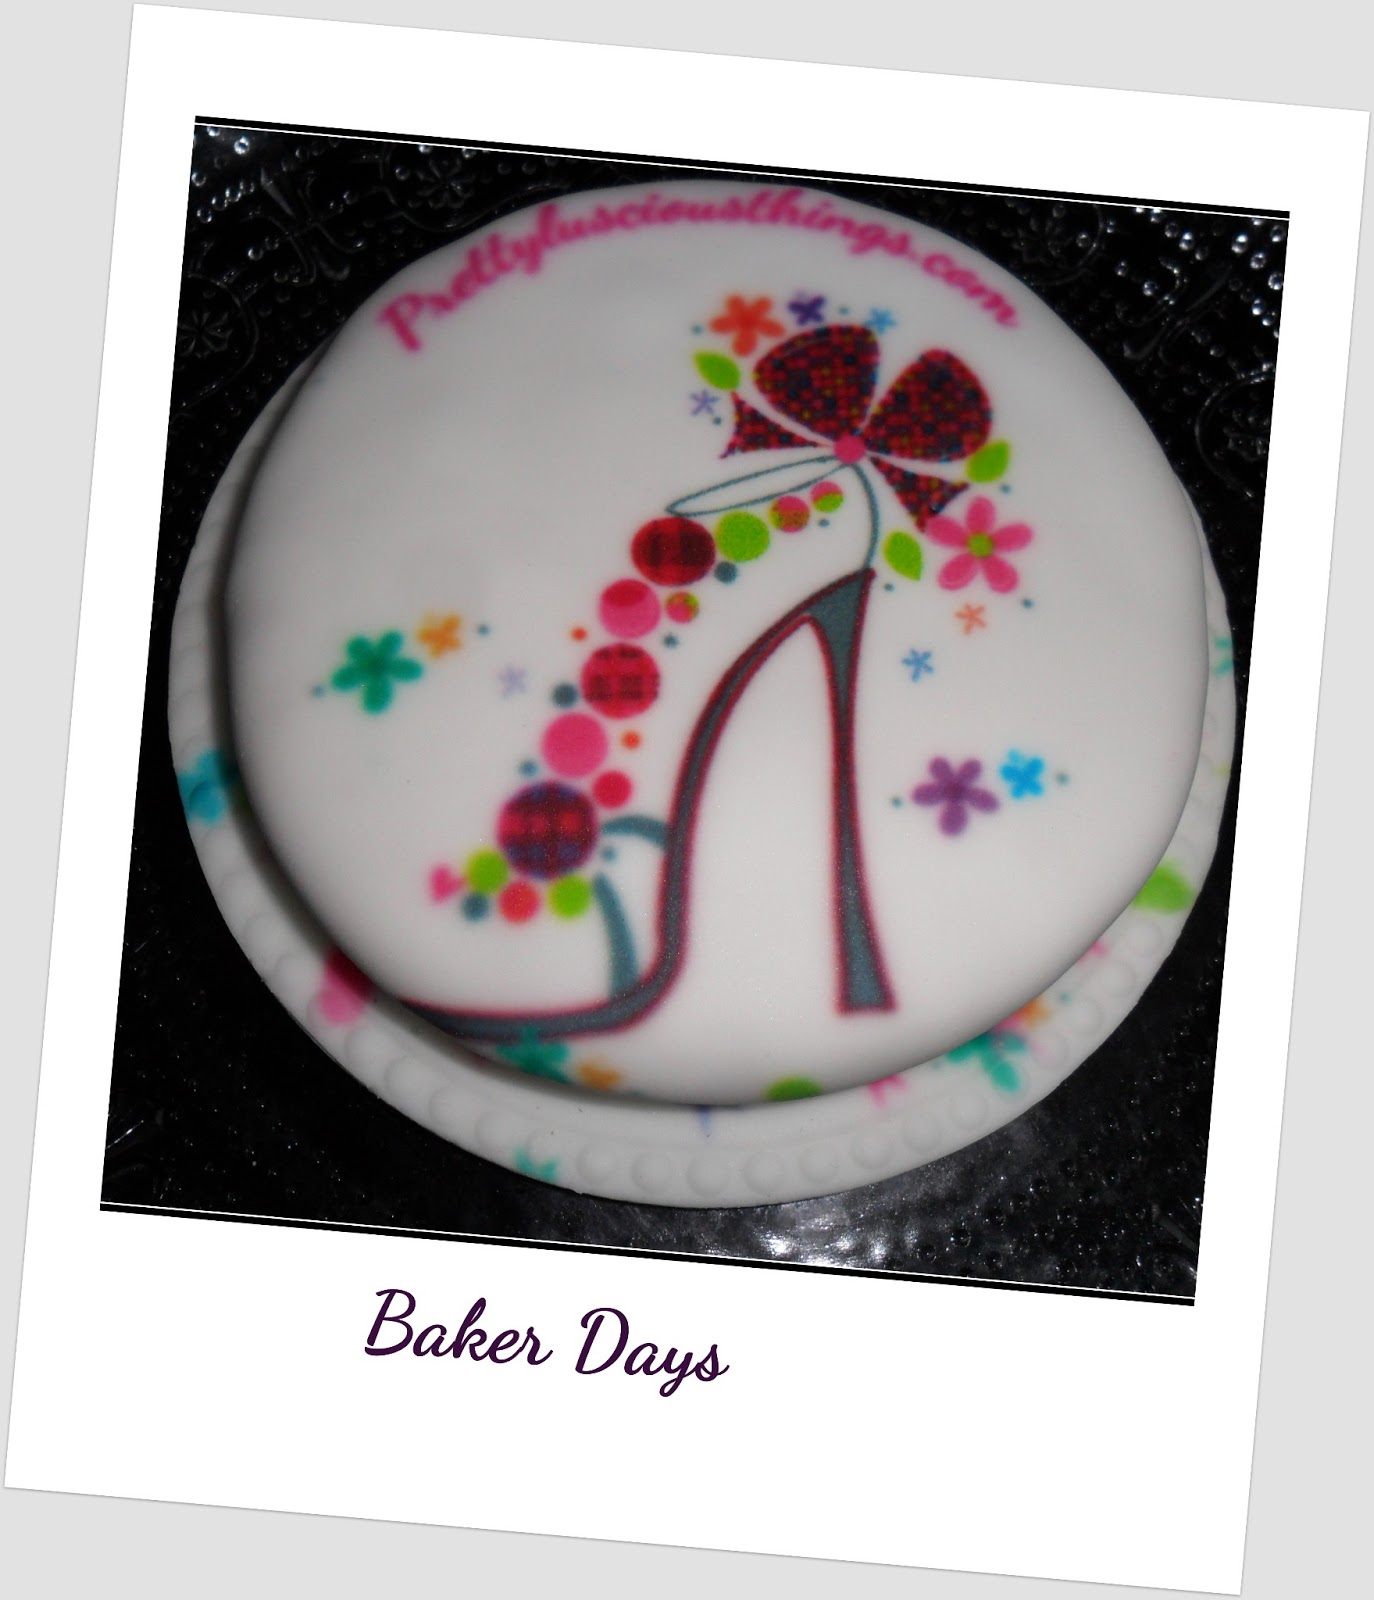 Letterbox Cakes, online cake, cake, Baker Days, Personalized Cakes